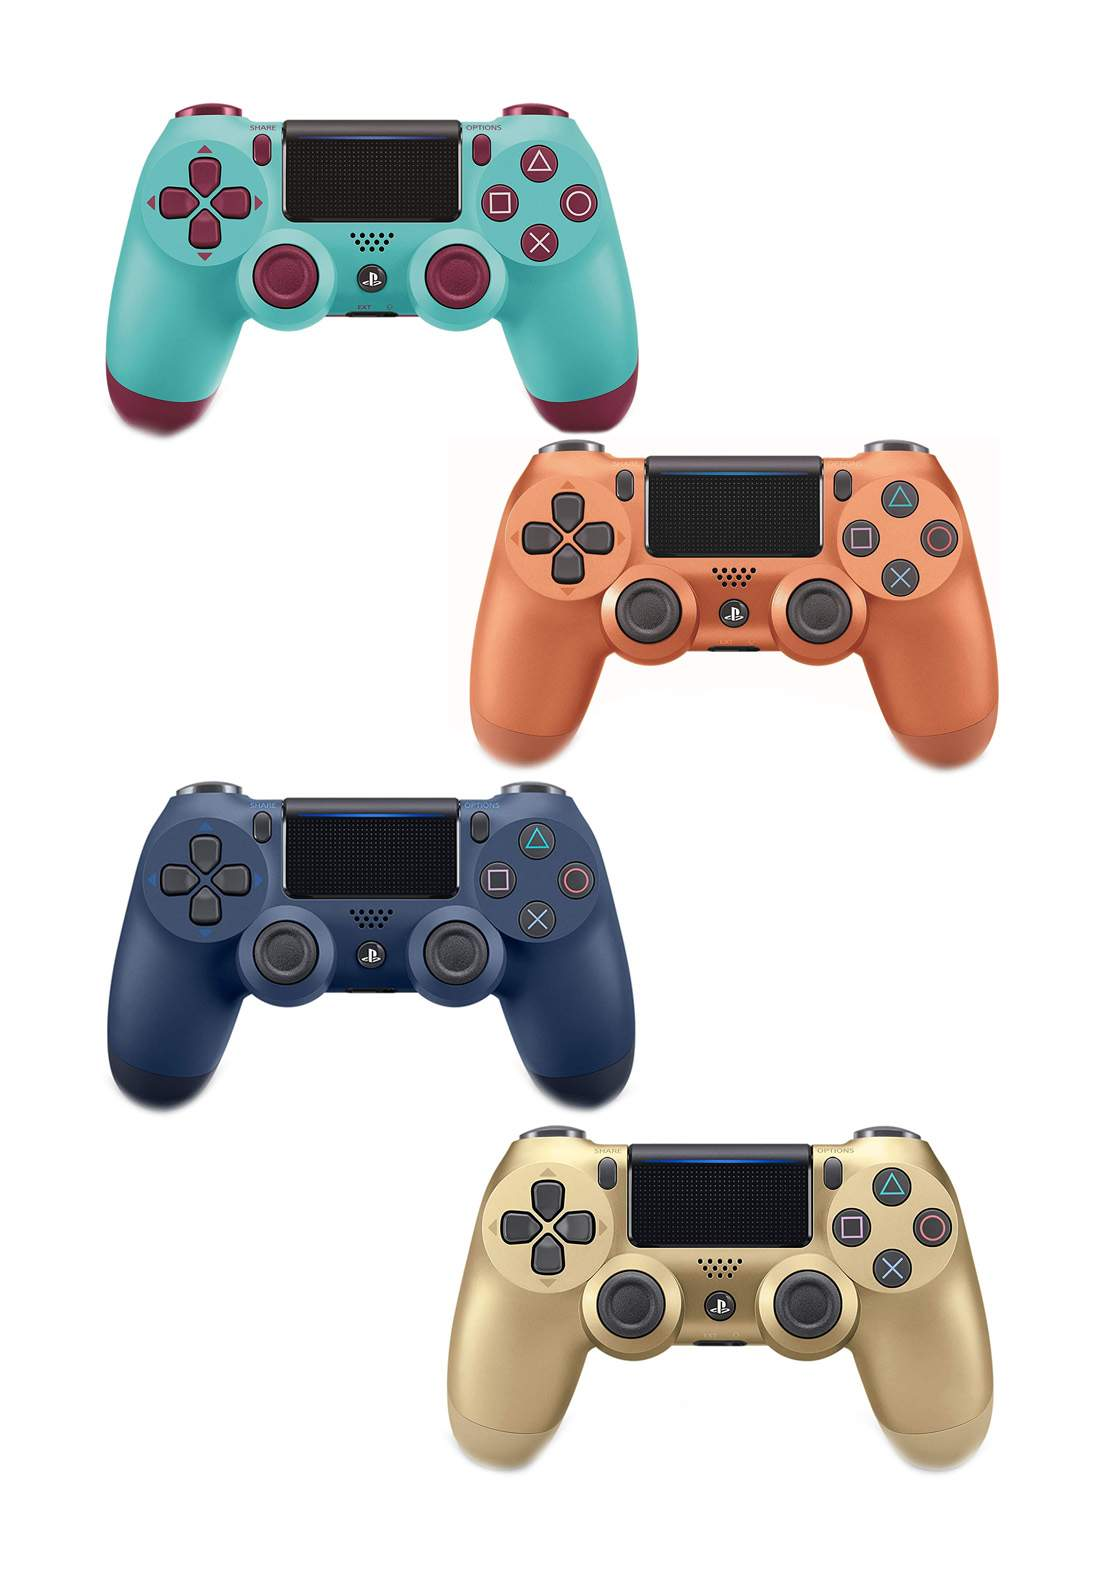 Sony Wireless Controller for PS4 وحدة تحكم